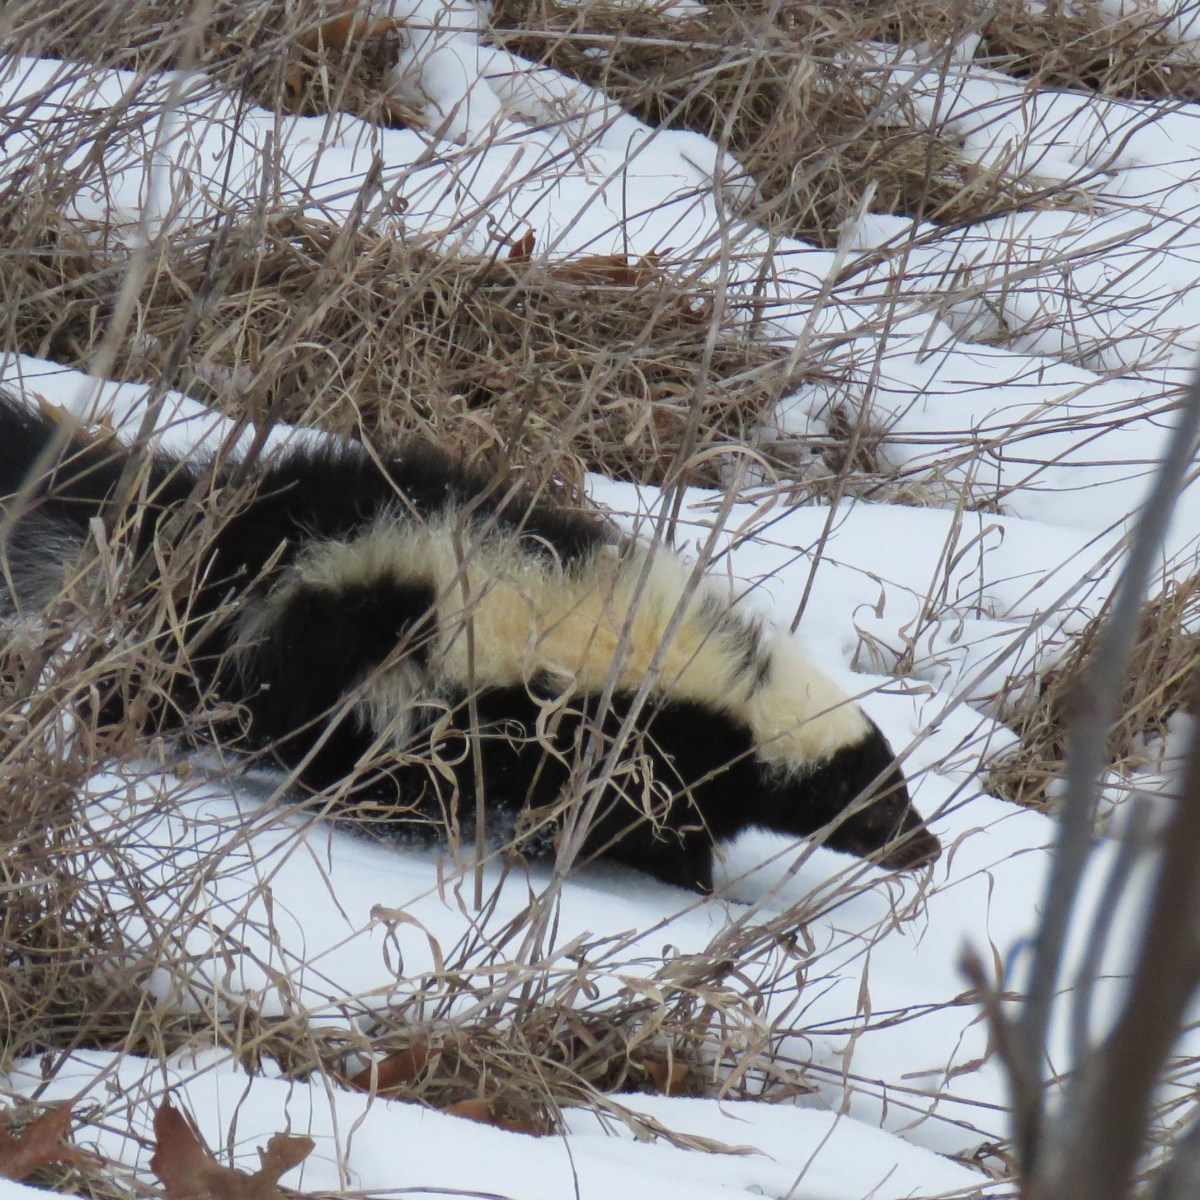 A skunk runs downhill through the snow and vegetation